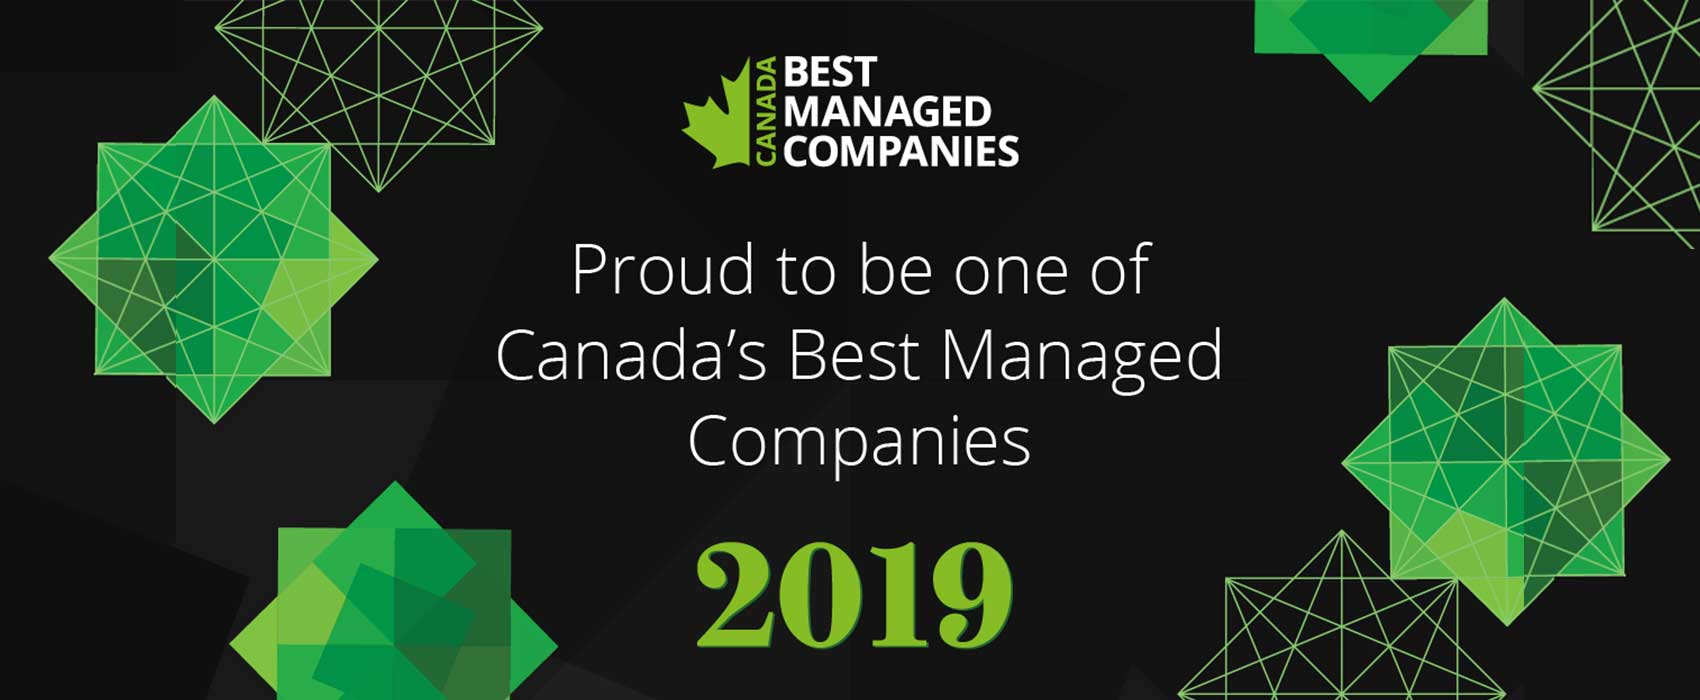 Image for Copperleaf Named One of Canada's Best Managed Companies